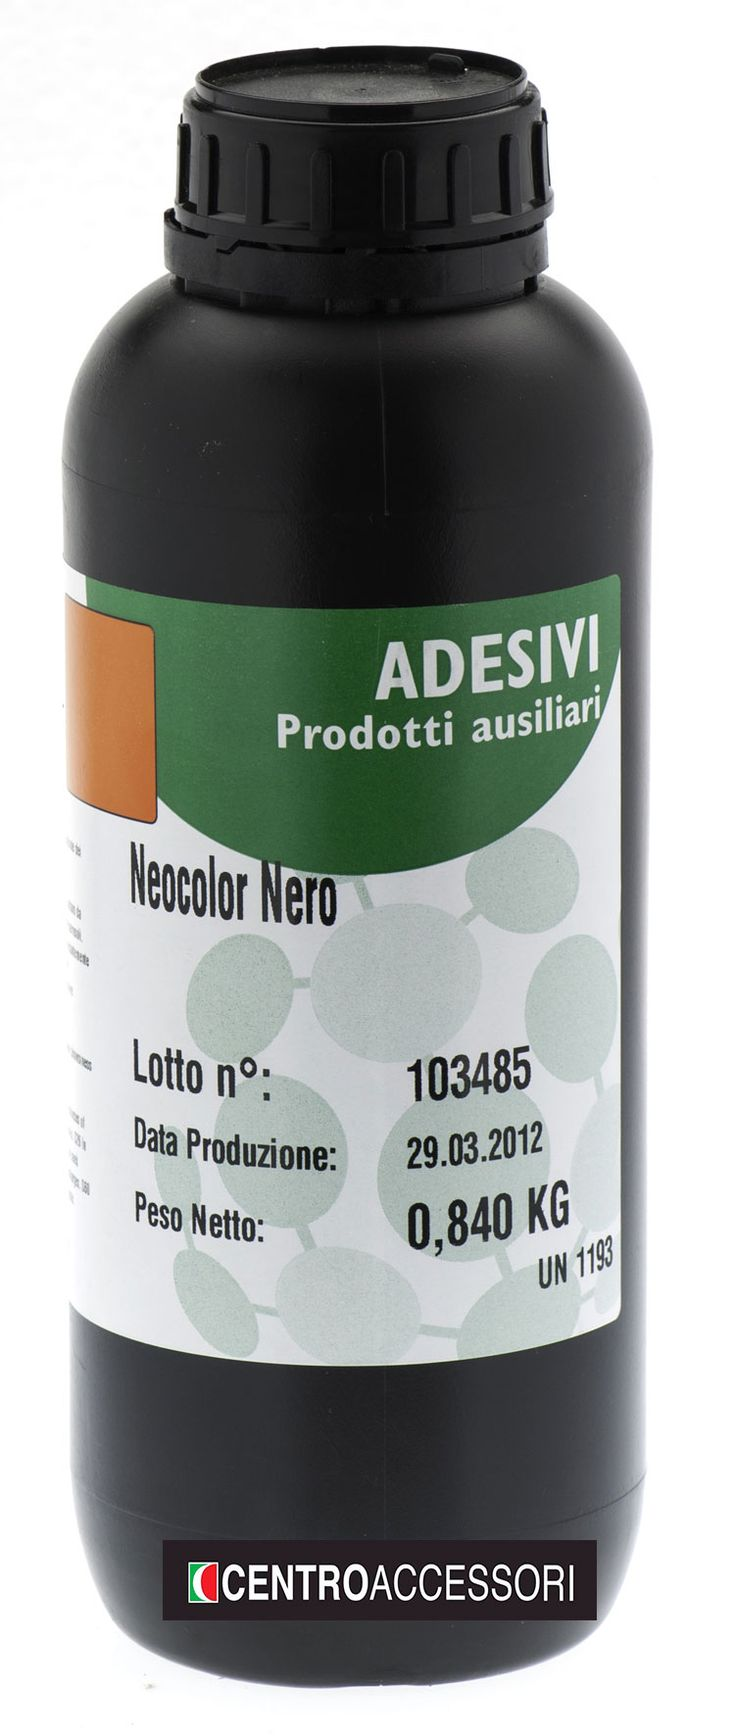 Neocolor/Ecocolor, coloranti per adesivi a base poliuretanica, policloroprenica e base d'acqua. Colouring agent for solvent based adhesives. #CentroAccessori